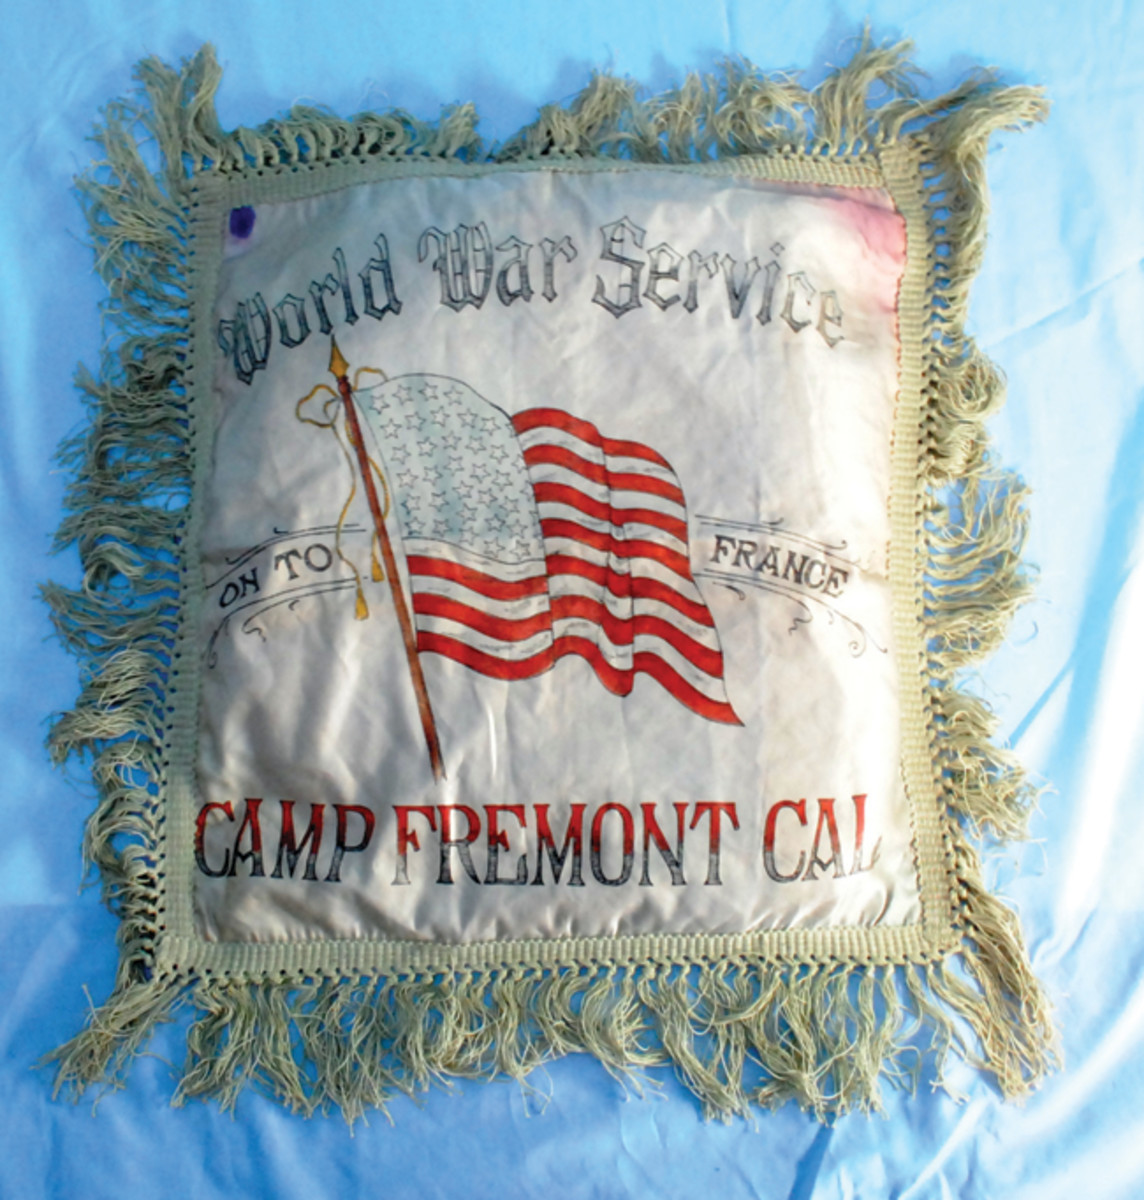 Camp Fremont in Palo Alto, California, was a troubled camp from the very beginning with sewage and size problems. It was even shorter lived than most of the other training camps and so finding items such as this pillowcase may prove a challenge.